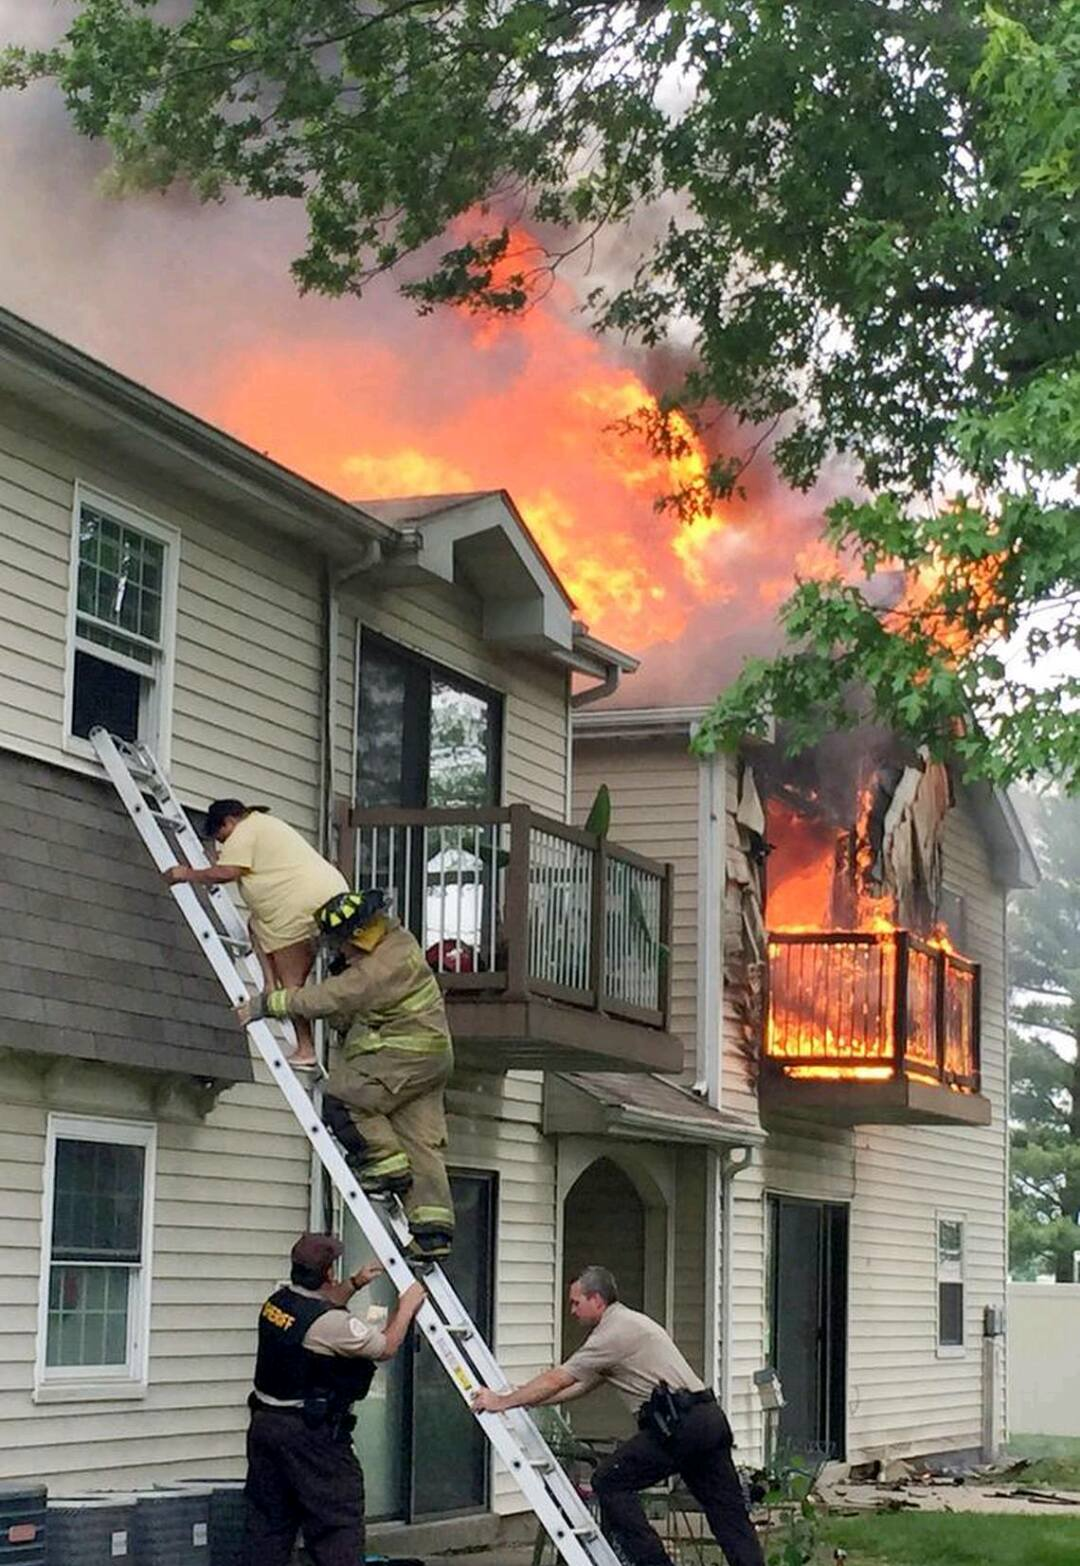 On 24 May 2015, ESFD firefighters responded to a fire in a 16-unit apartment complex. Several trapped residents were rescued, and the fire was stopped before it could spread to the entire building. Photo Credit: Belleville News Democrat